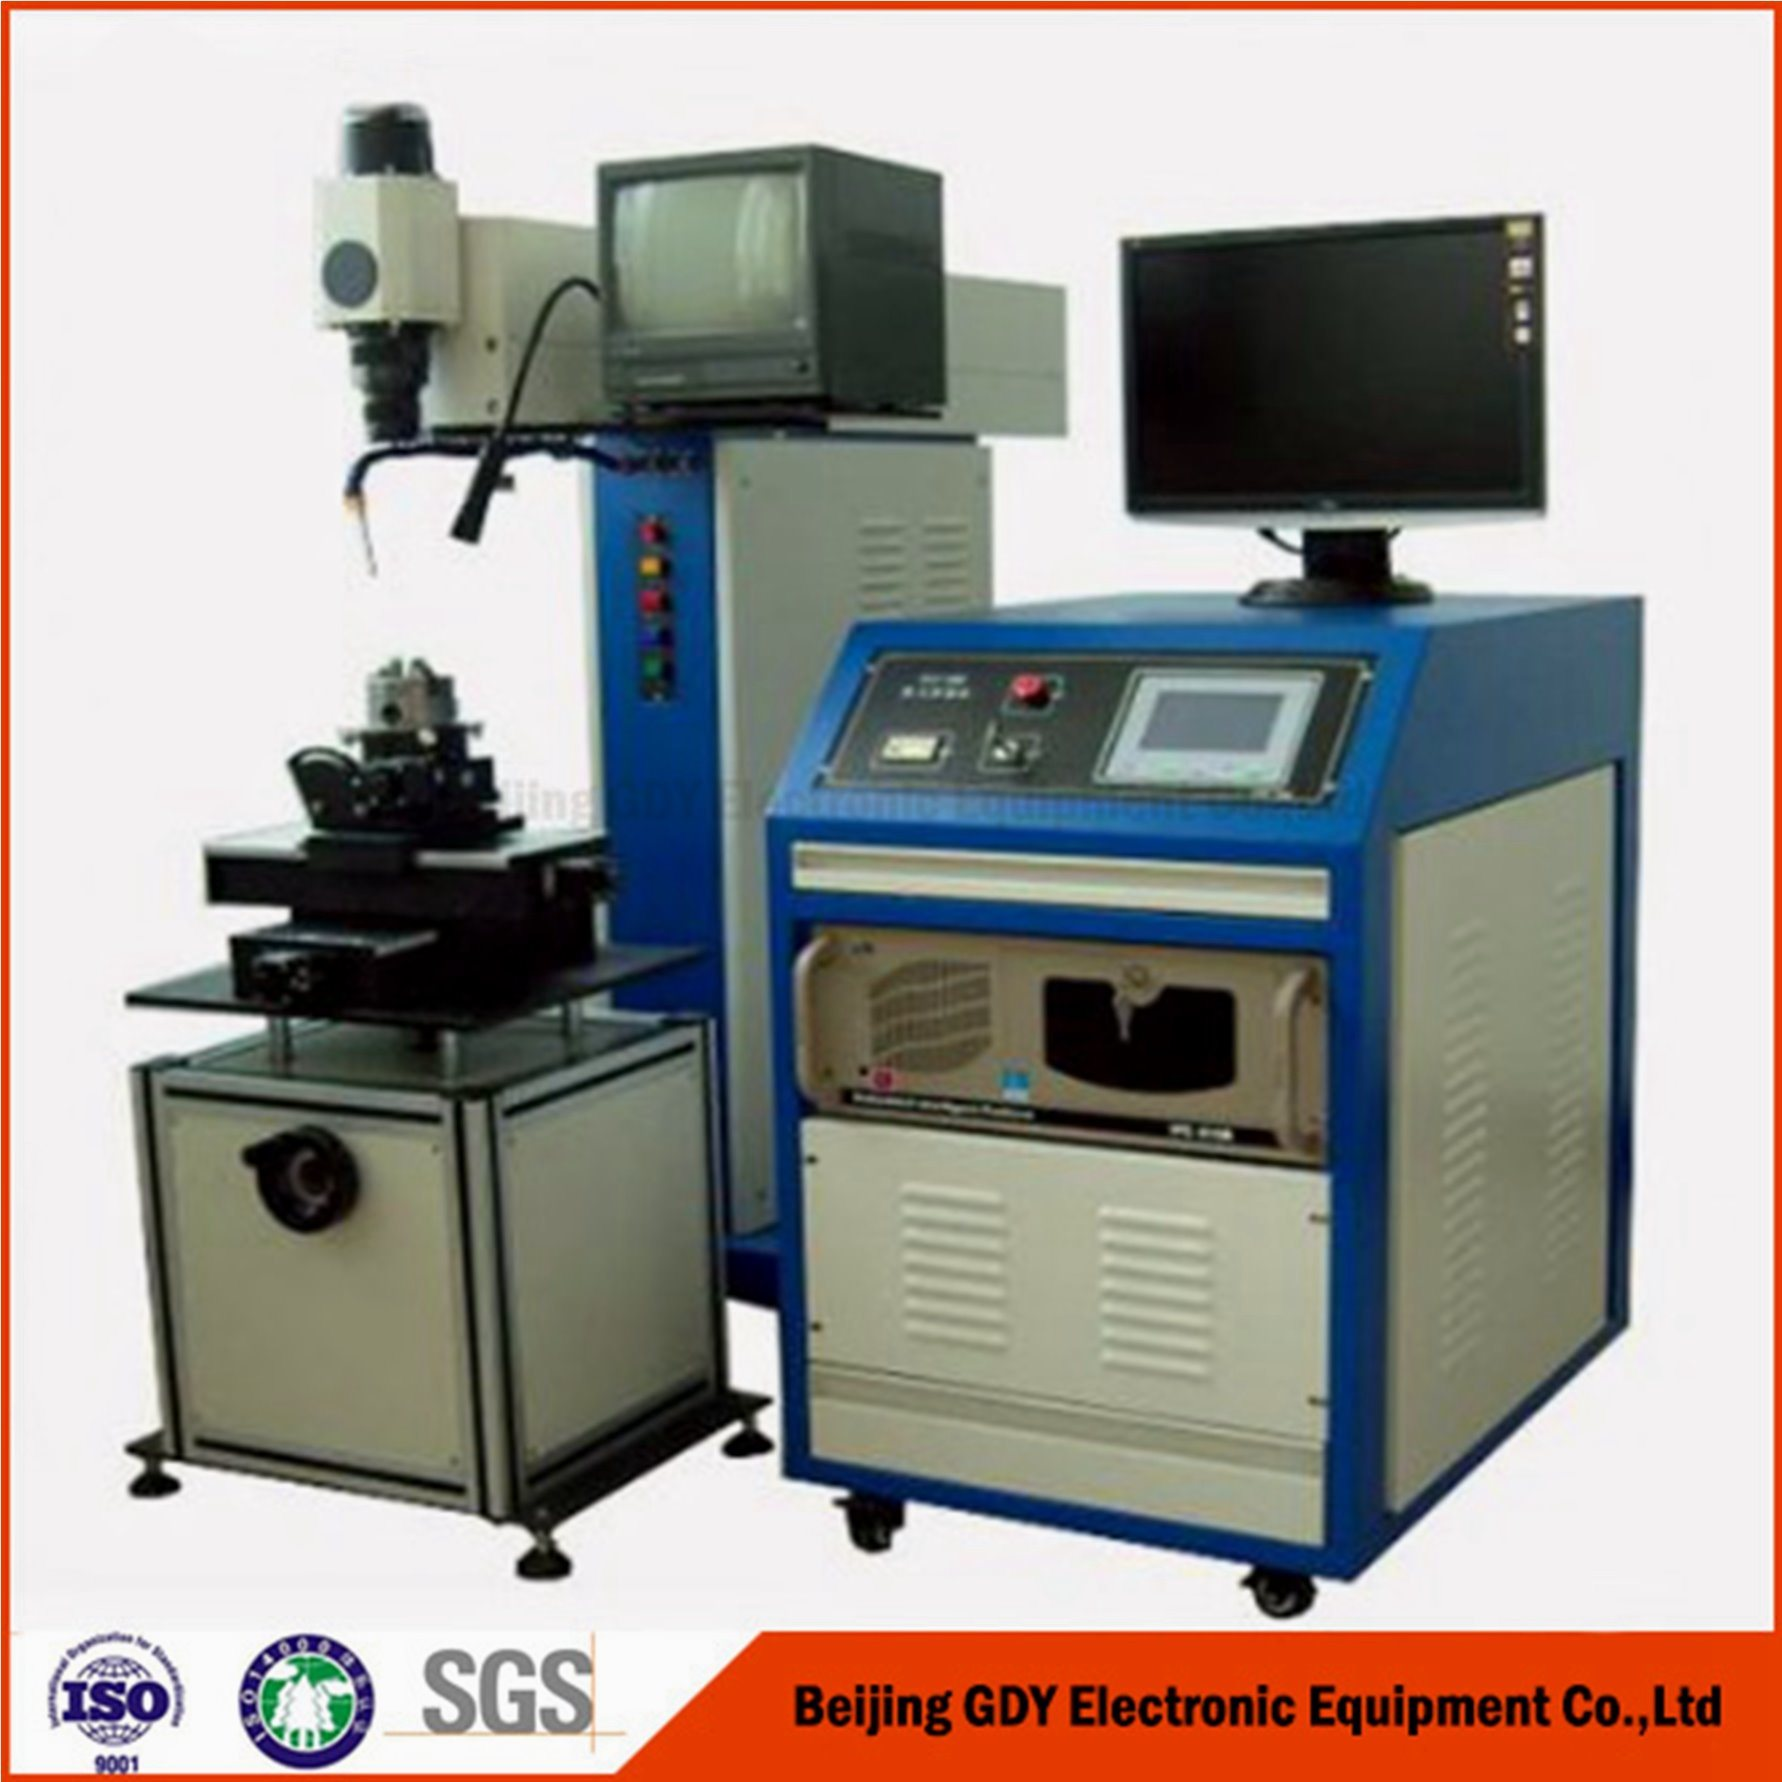 Dedicated Laser Welding Machinery for Mebrane and Diaphragm